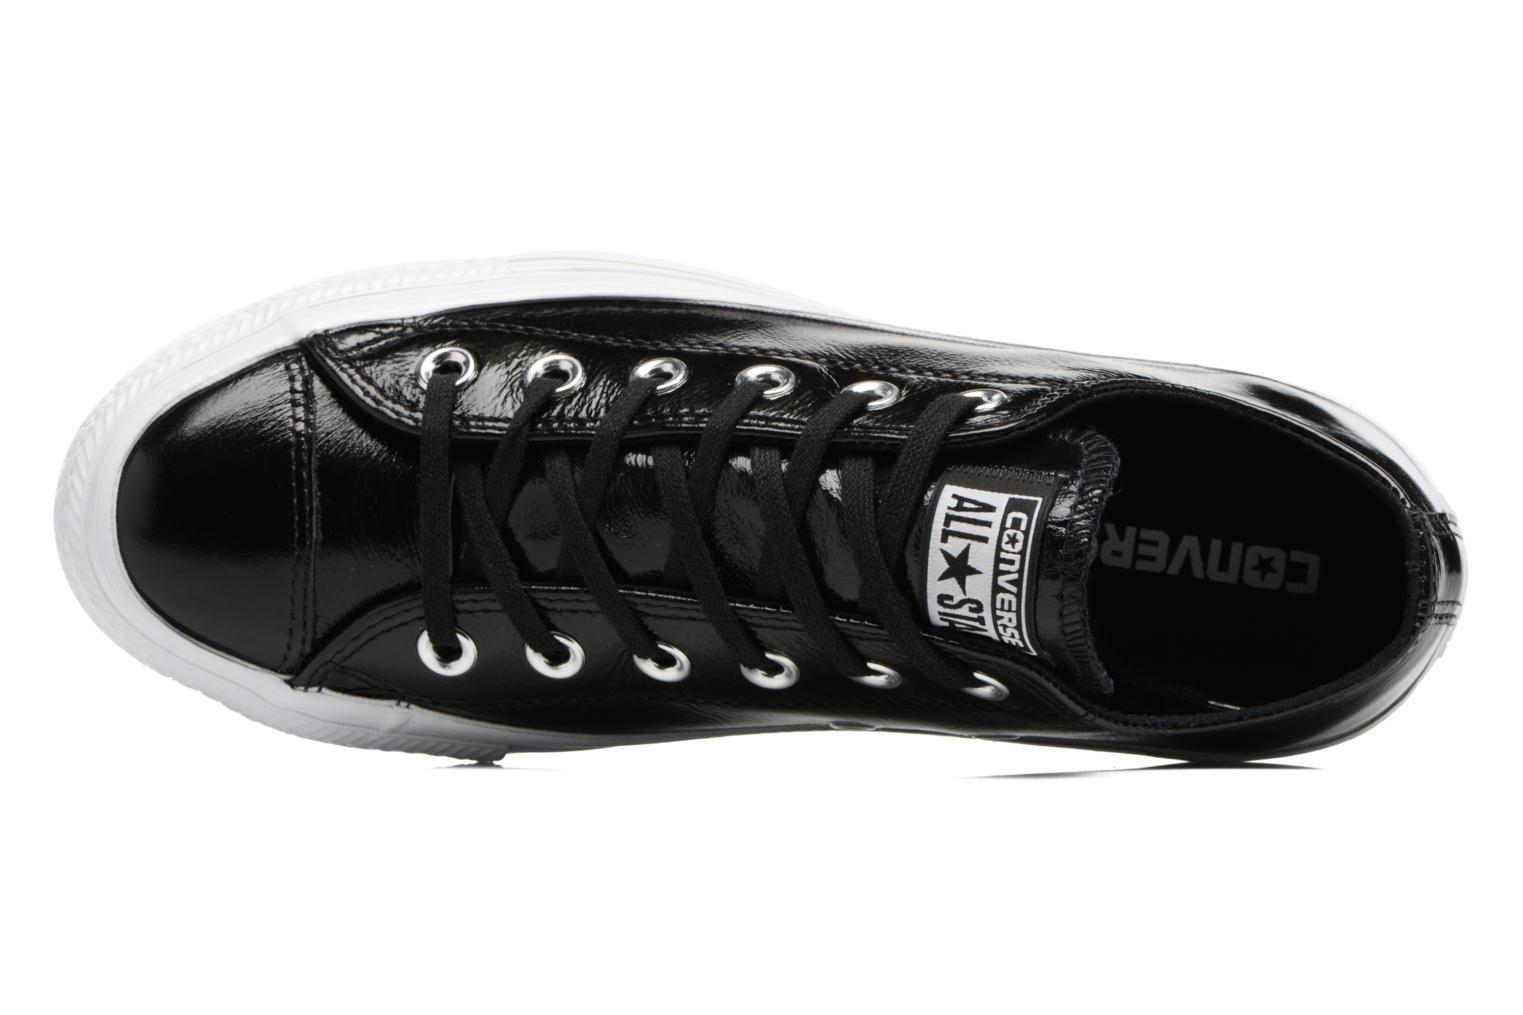 Chuck Taylor All Star Crinkled Patent Leather Ox Black/black/white